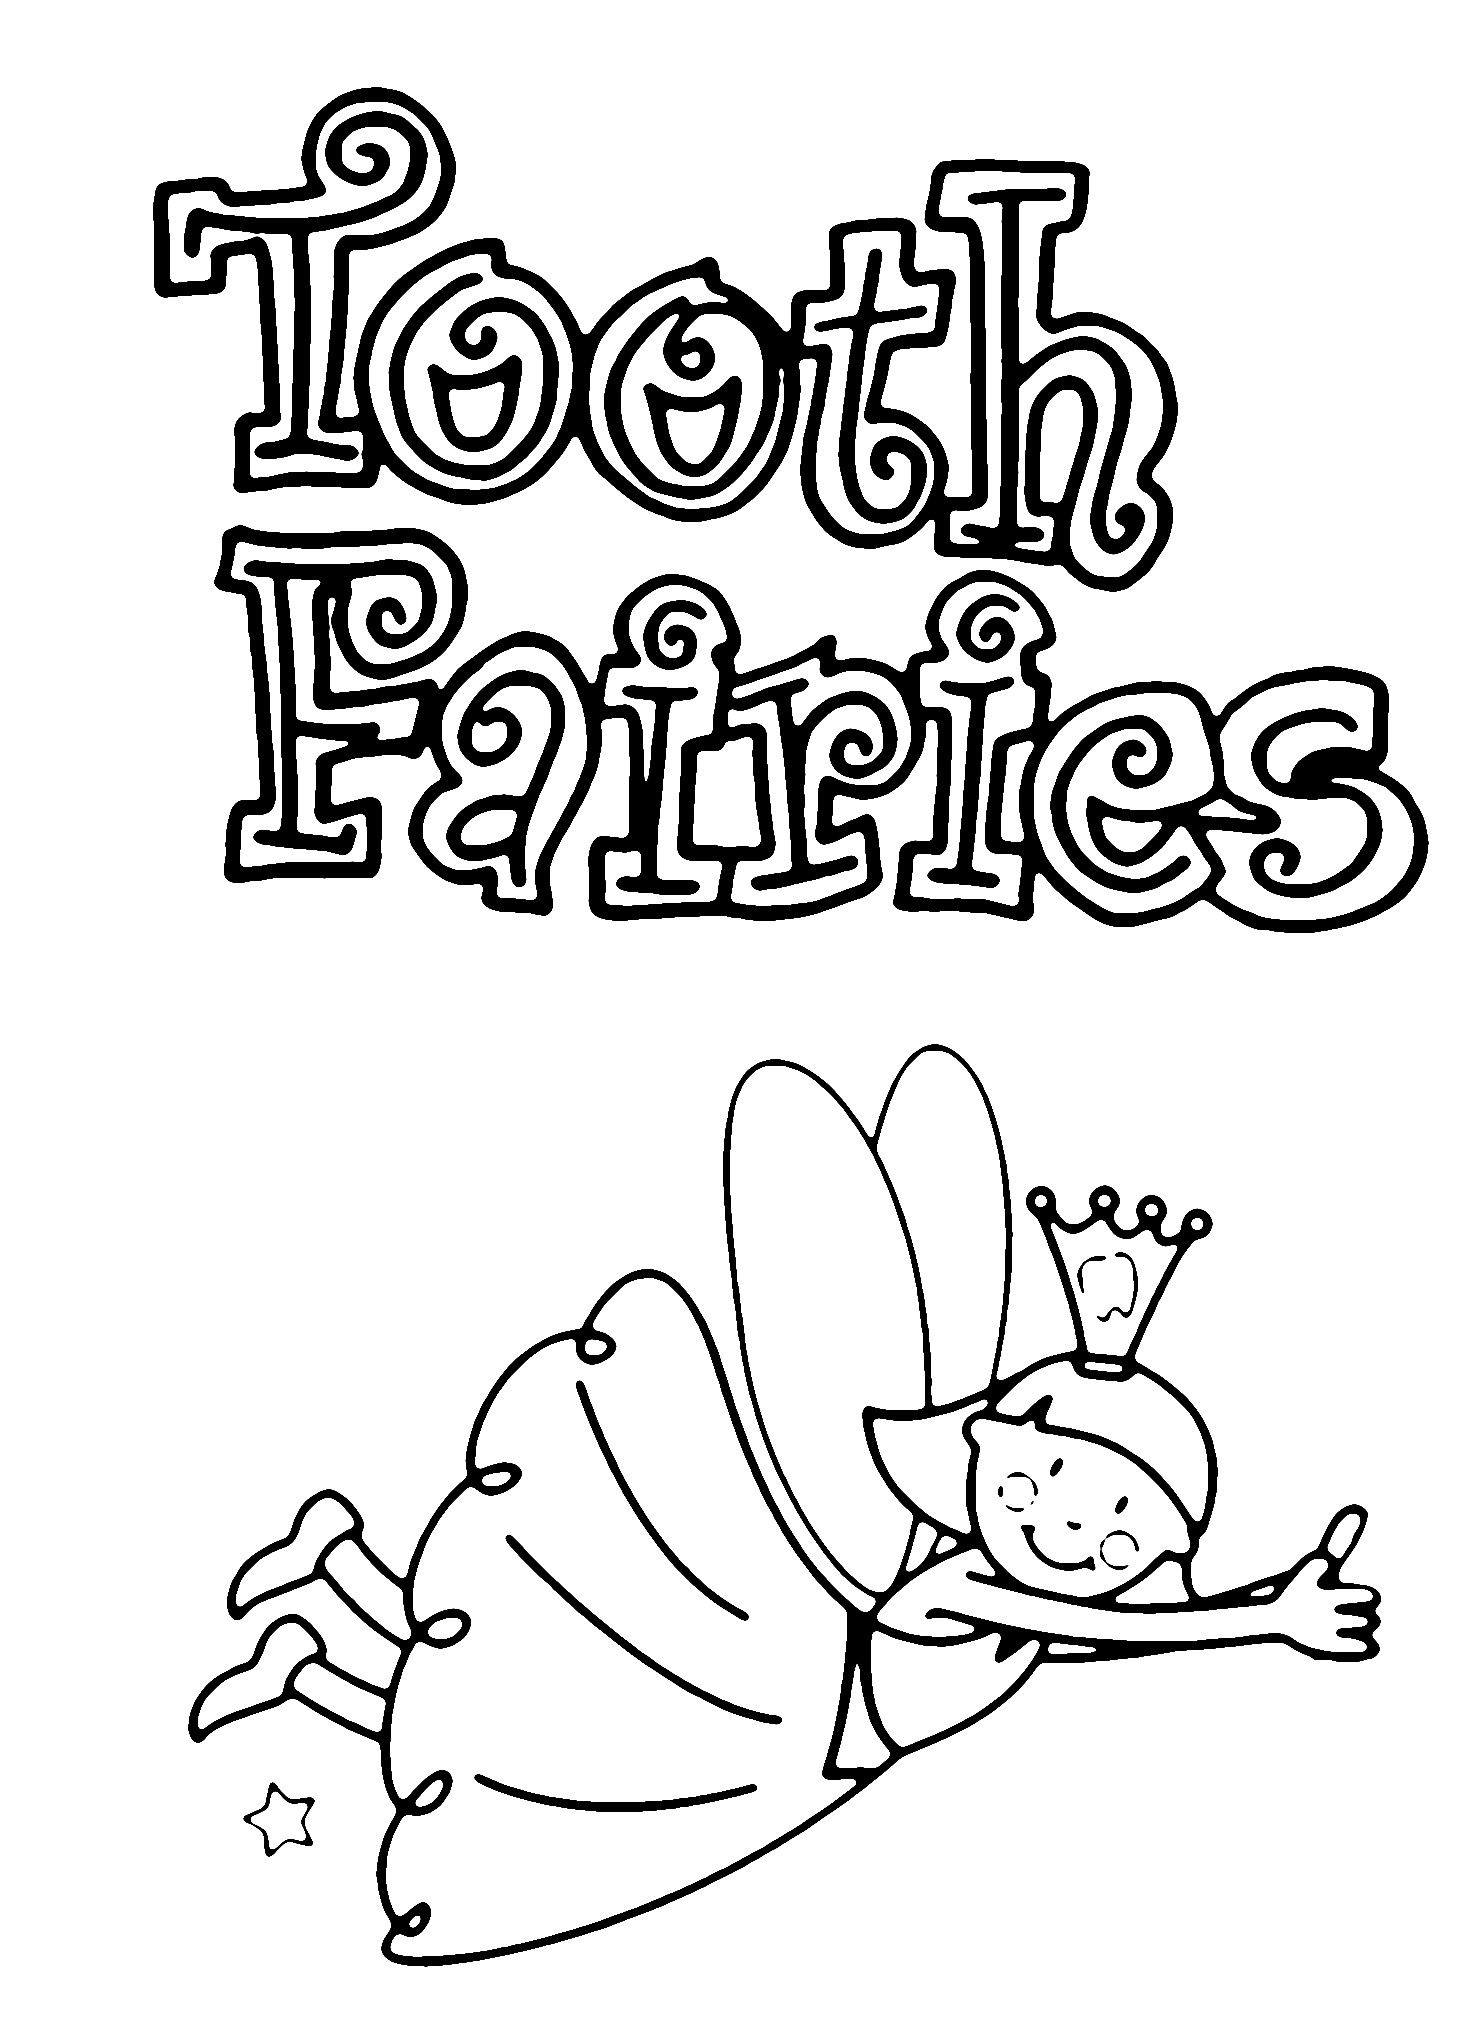 Check out our downloadable tooth fairy activities and